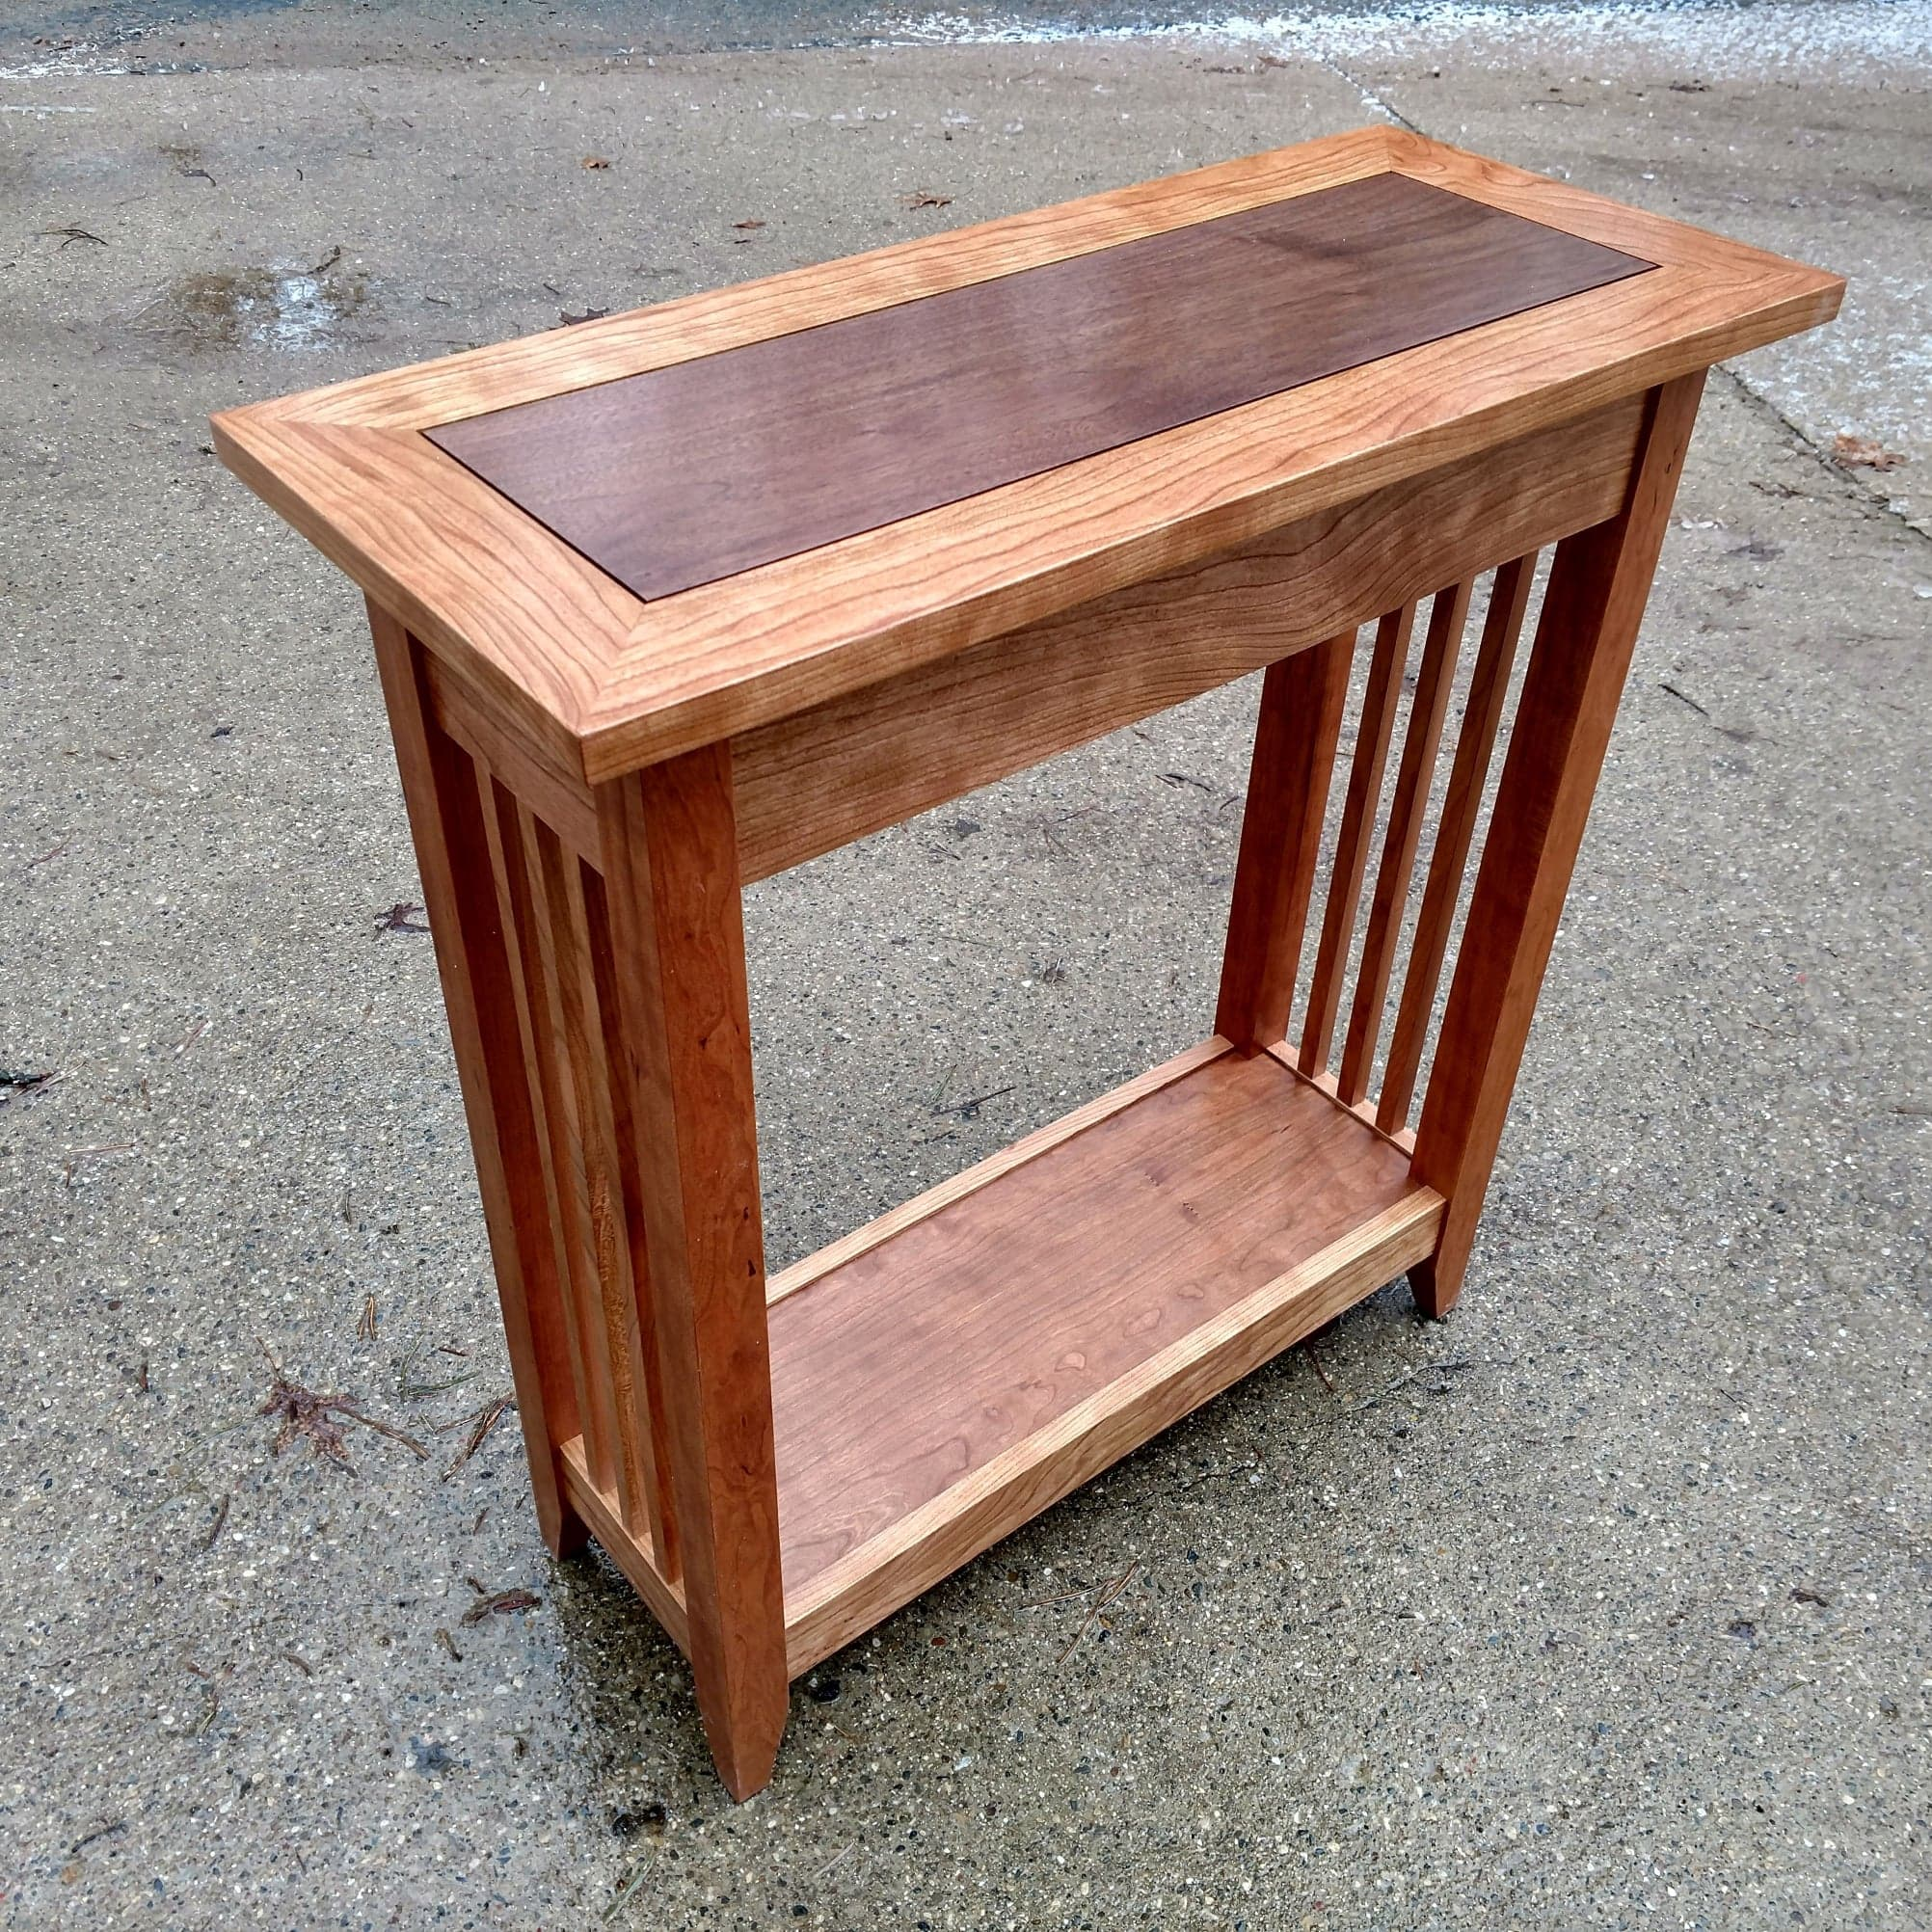 Cherry With a Walnut Insert